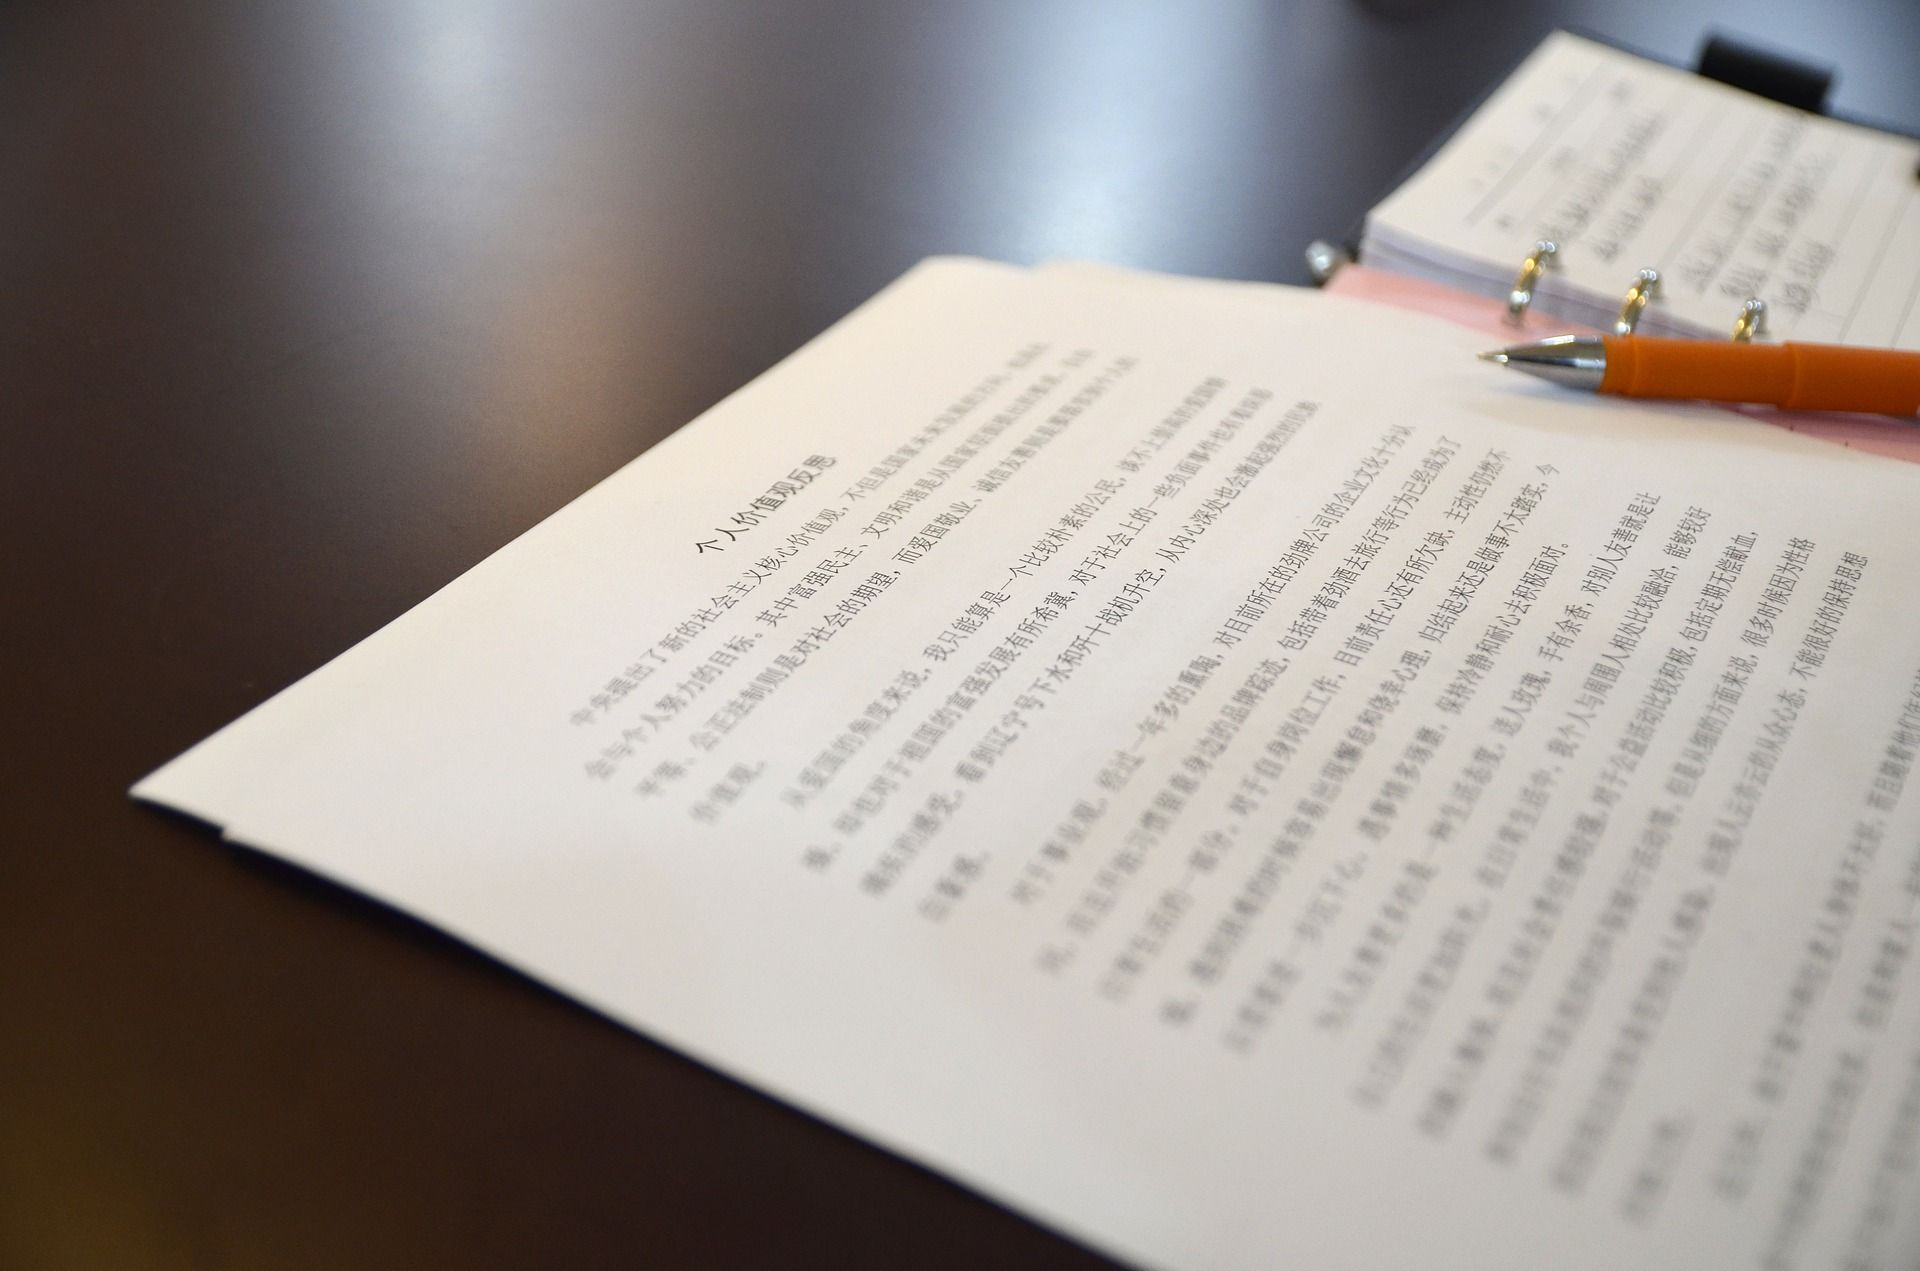 Paper with Chinese writing